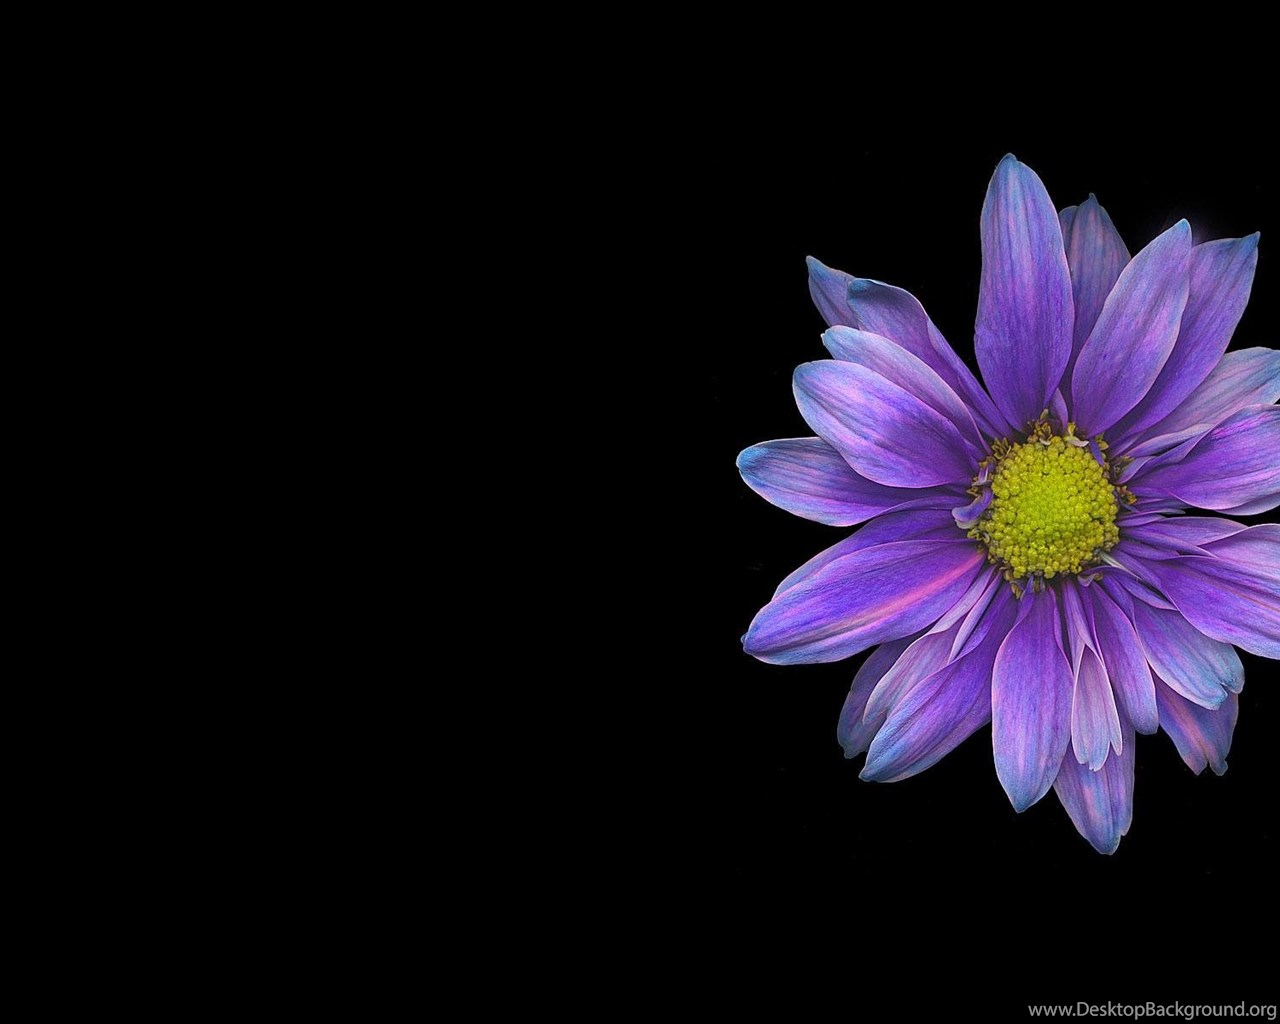 Single Flower Wallpapers: Single Flower Wallpapers Wallpapers Cave Desktop Background